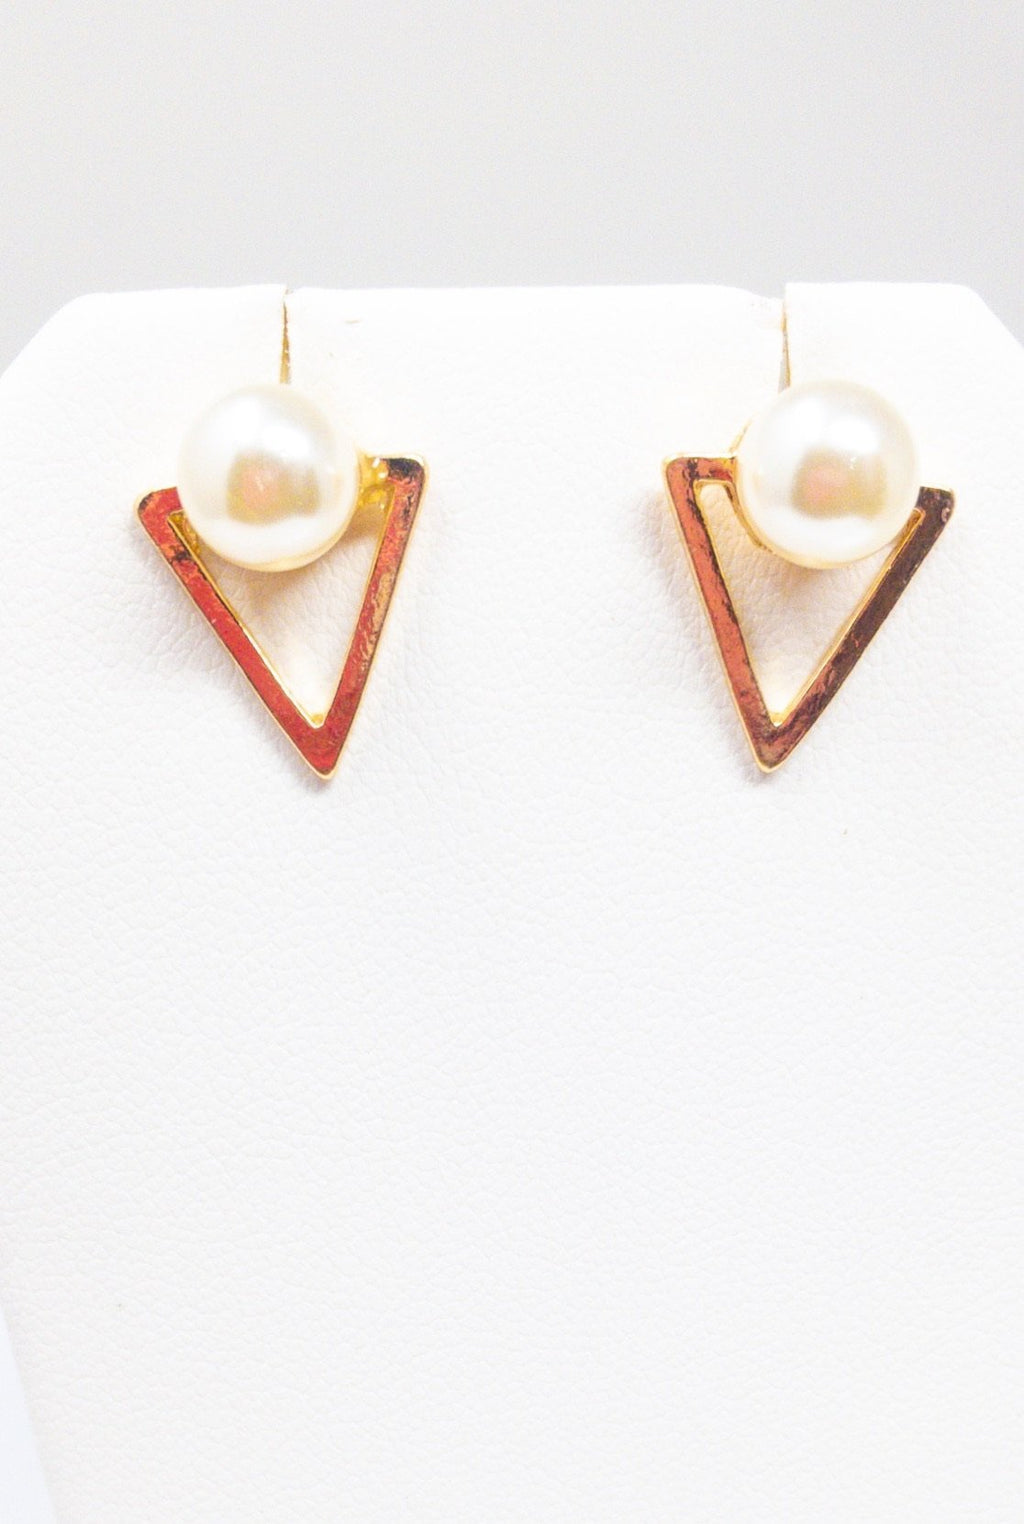 Aisha's Earrings - EarringEverything.com - Studs - earrings - fashion - fashion_accessories